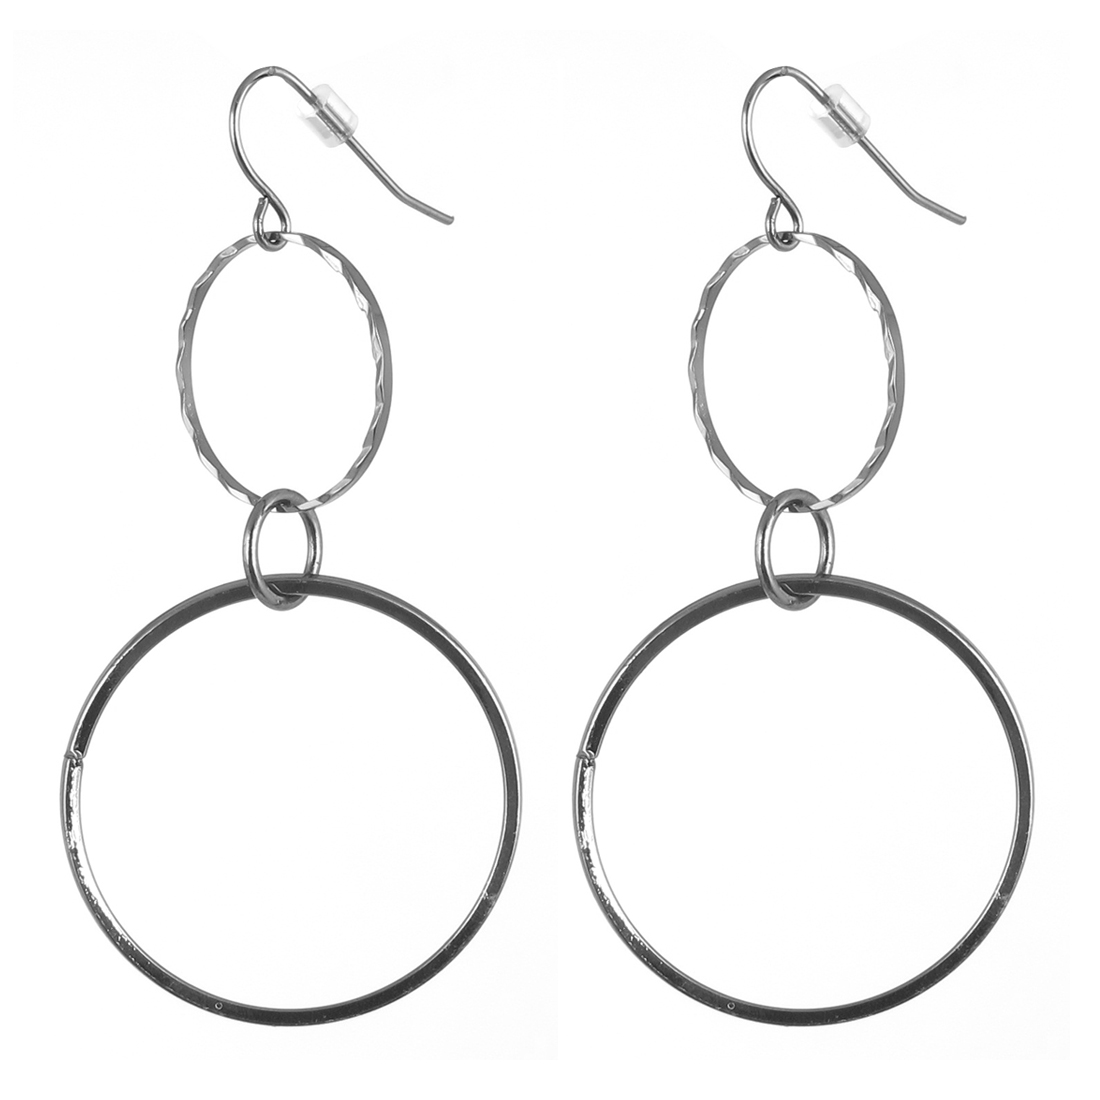 "Women Metal Tricyclic Connect Hollow Out Circle Shape Dangling Pendant Hook Earrings Earbobs Black 2.8"" Length Pair"